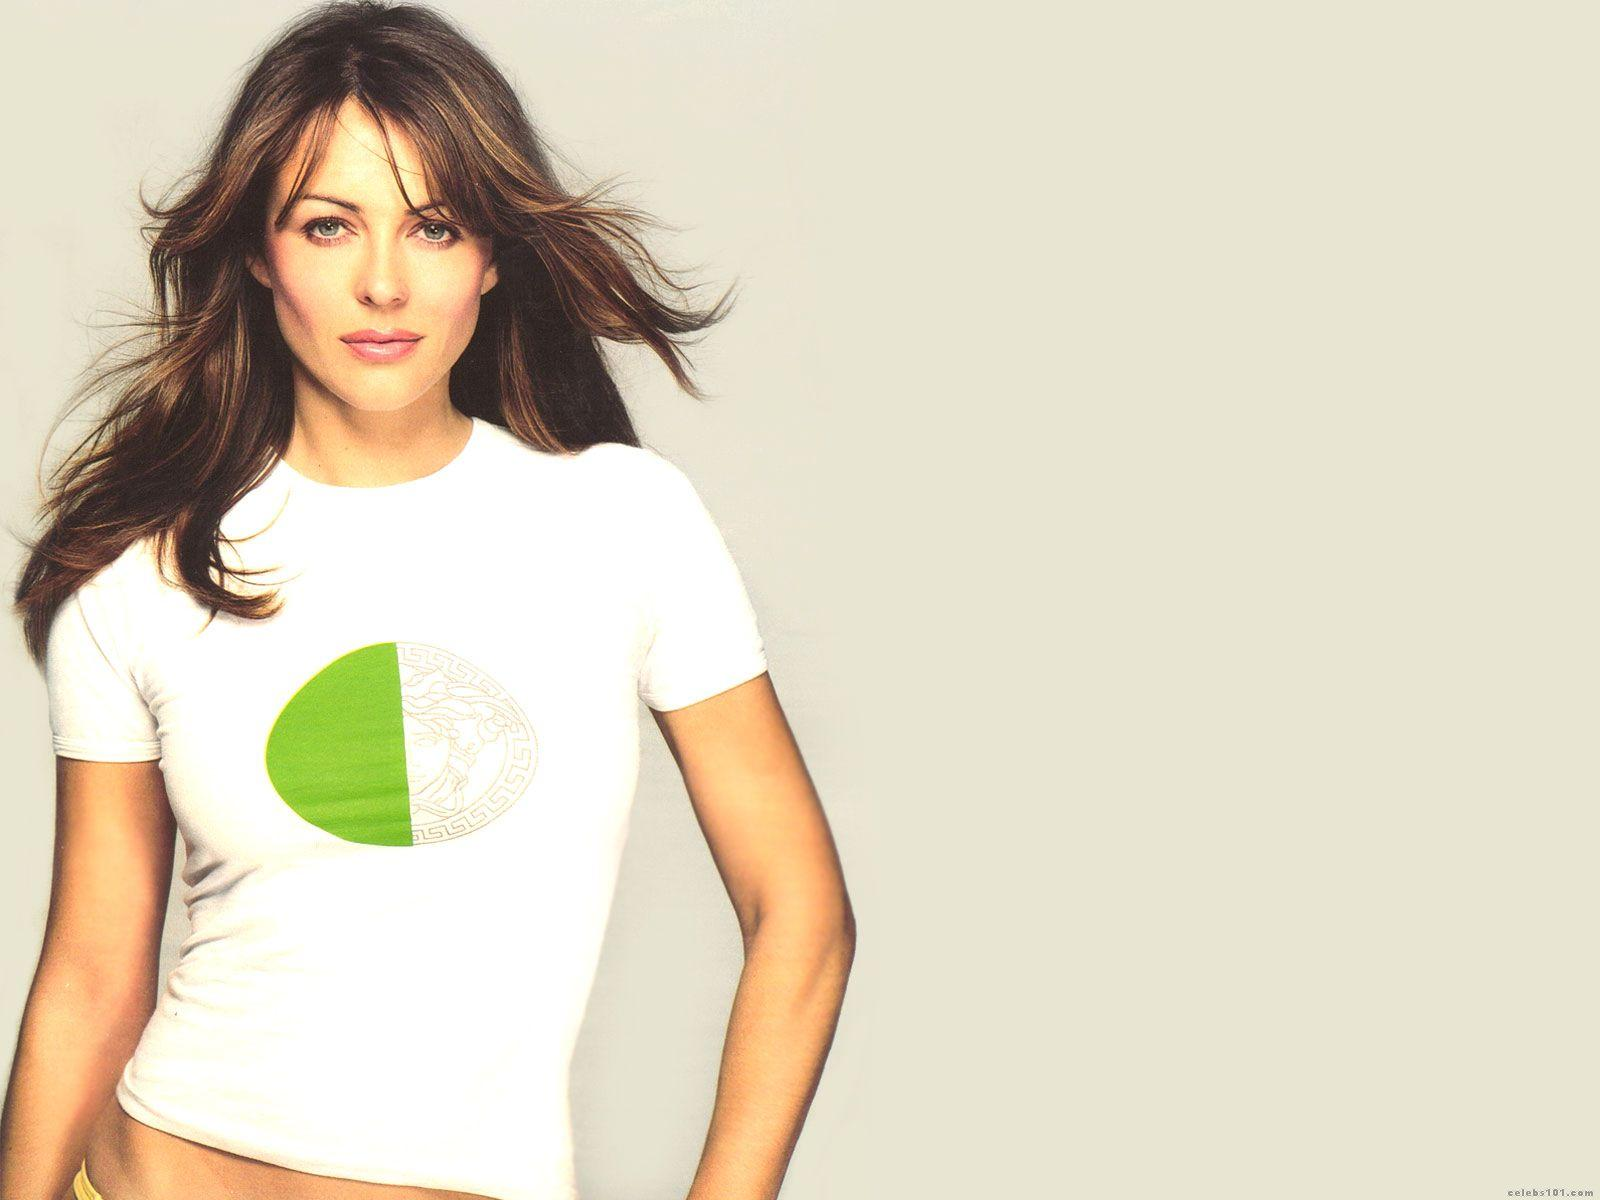 Elizabeth Hurley High quality wallpaper size 1600x1200 of 1600x1200